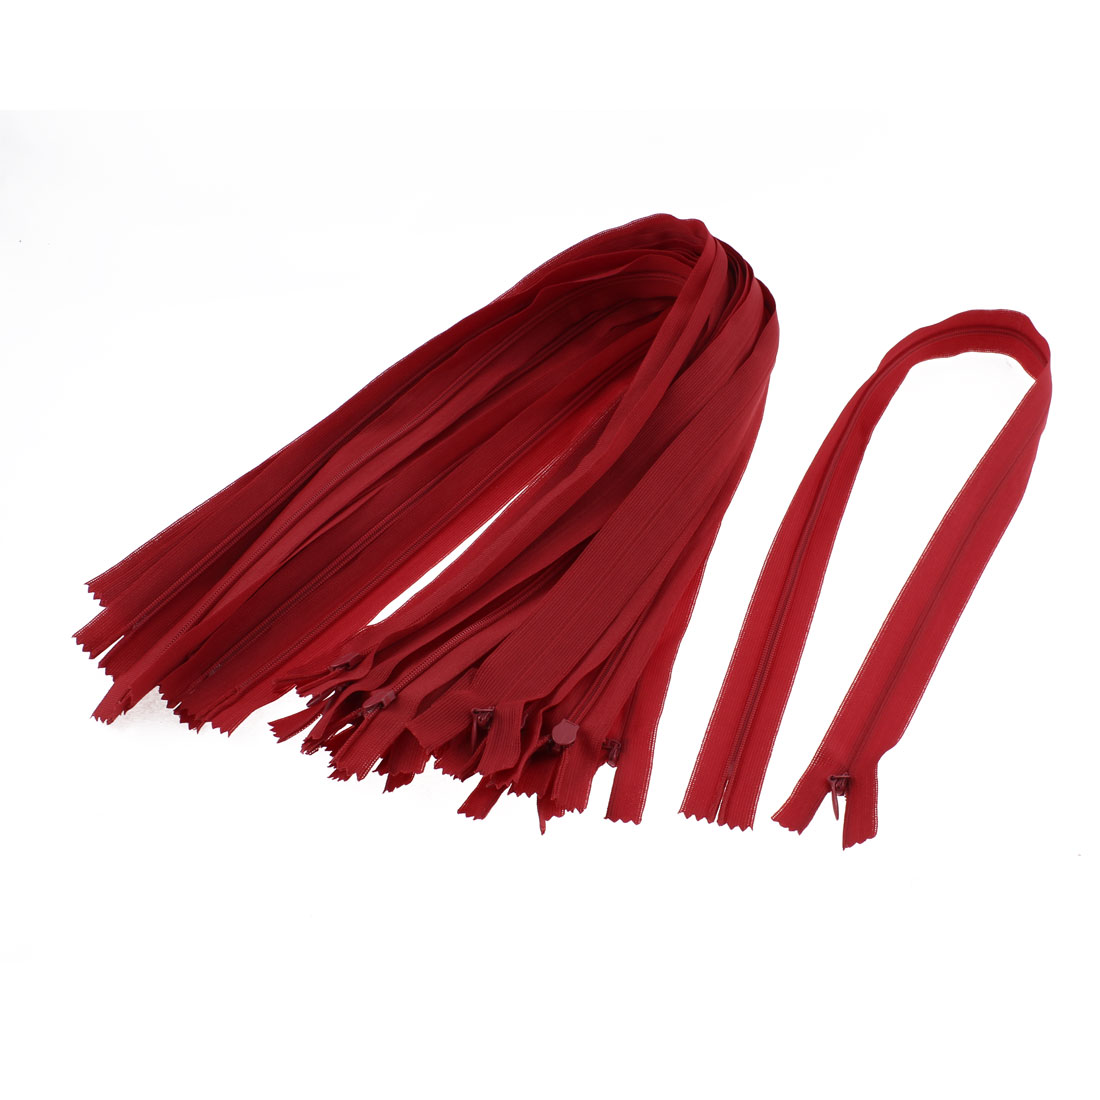 "Red Nylon Zippers Tailor Sewing Tools 24"" Long 20 Pcs"